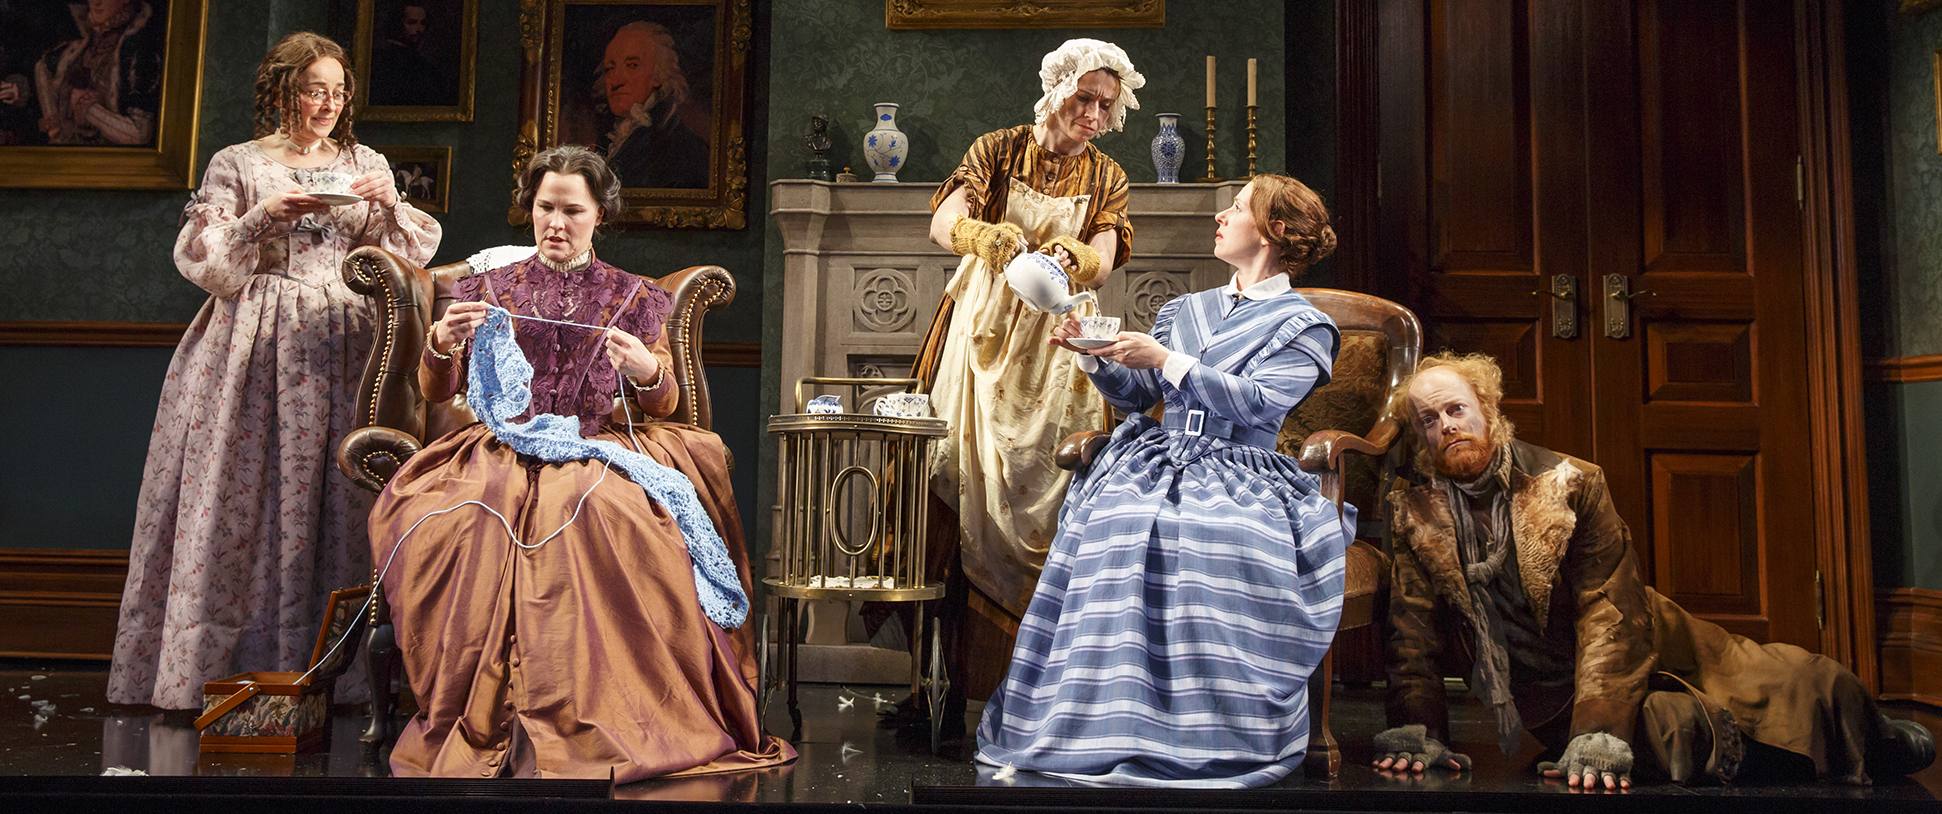 Birgit Huppuch, Kelly McAndrew, Hannah Cabell, Miriam Silverman, and Jeff Biehl in THE MOORS by Jen Silverman, directed by Jackson Gay. Photo © Joan Marcus, 2016.